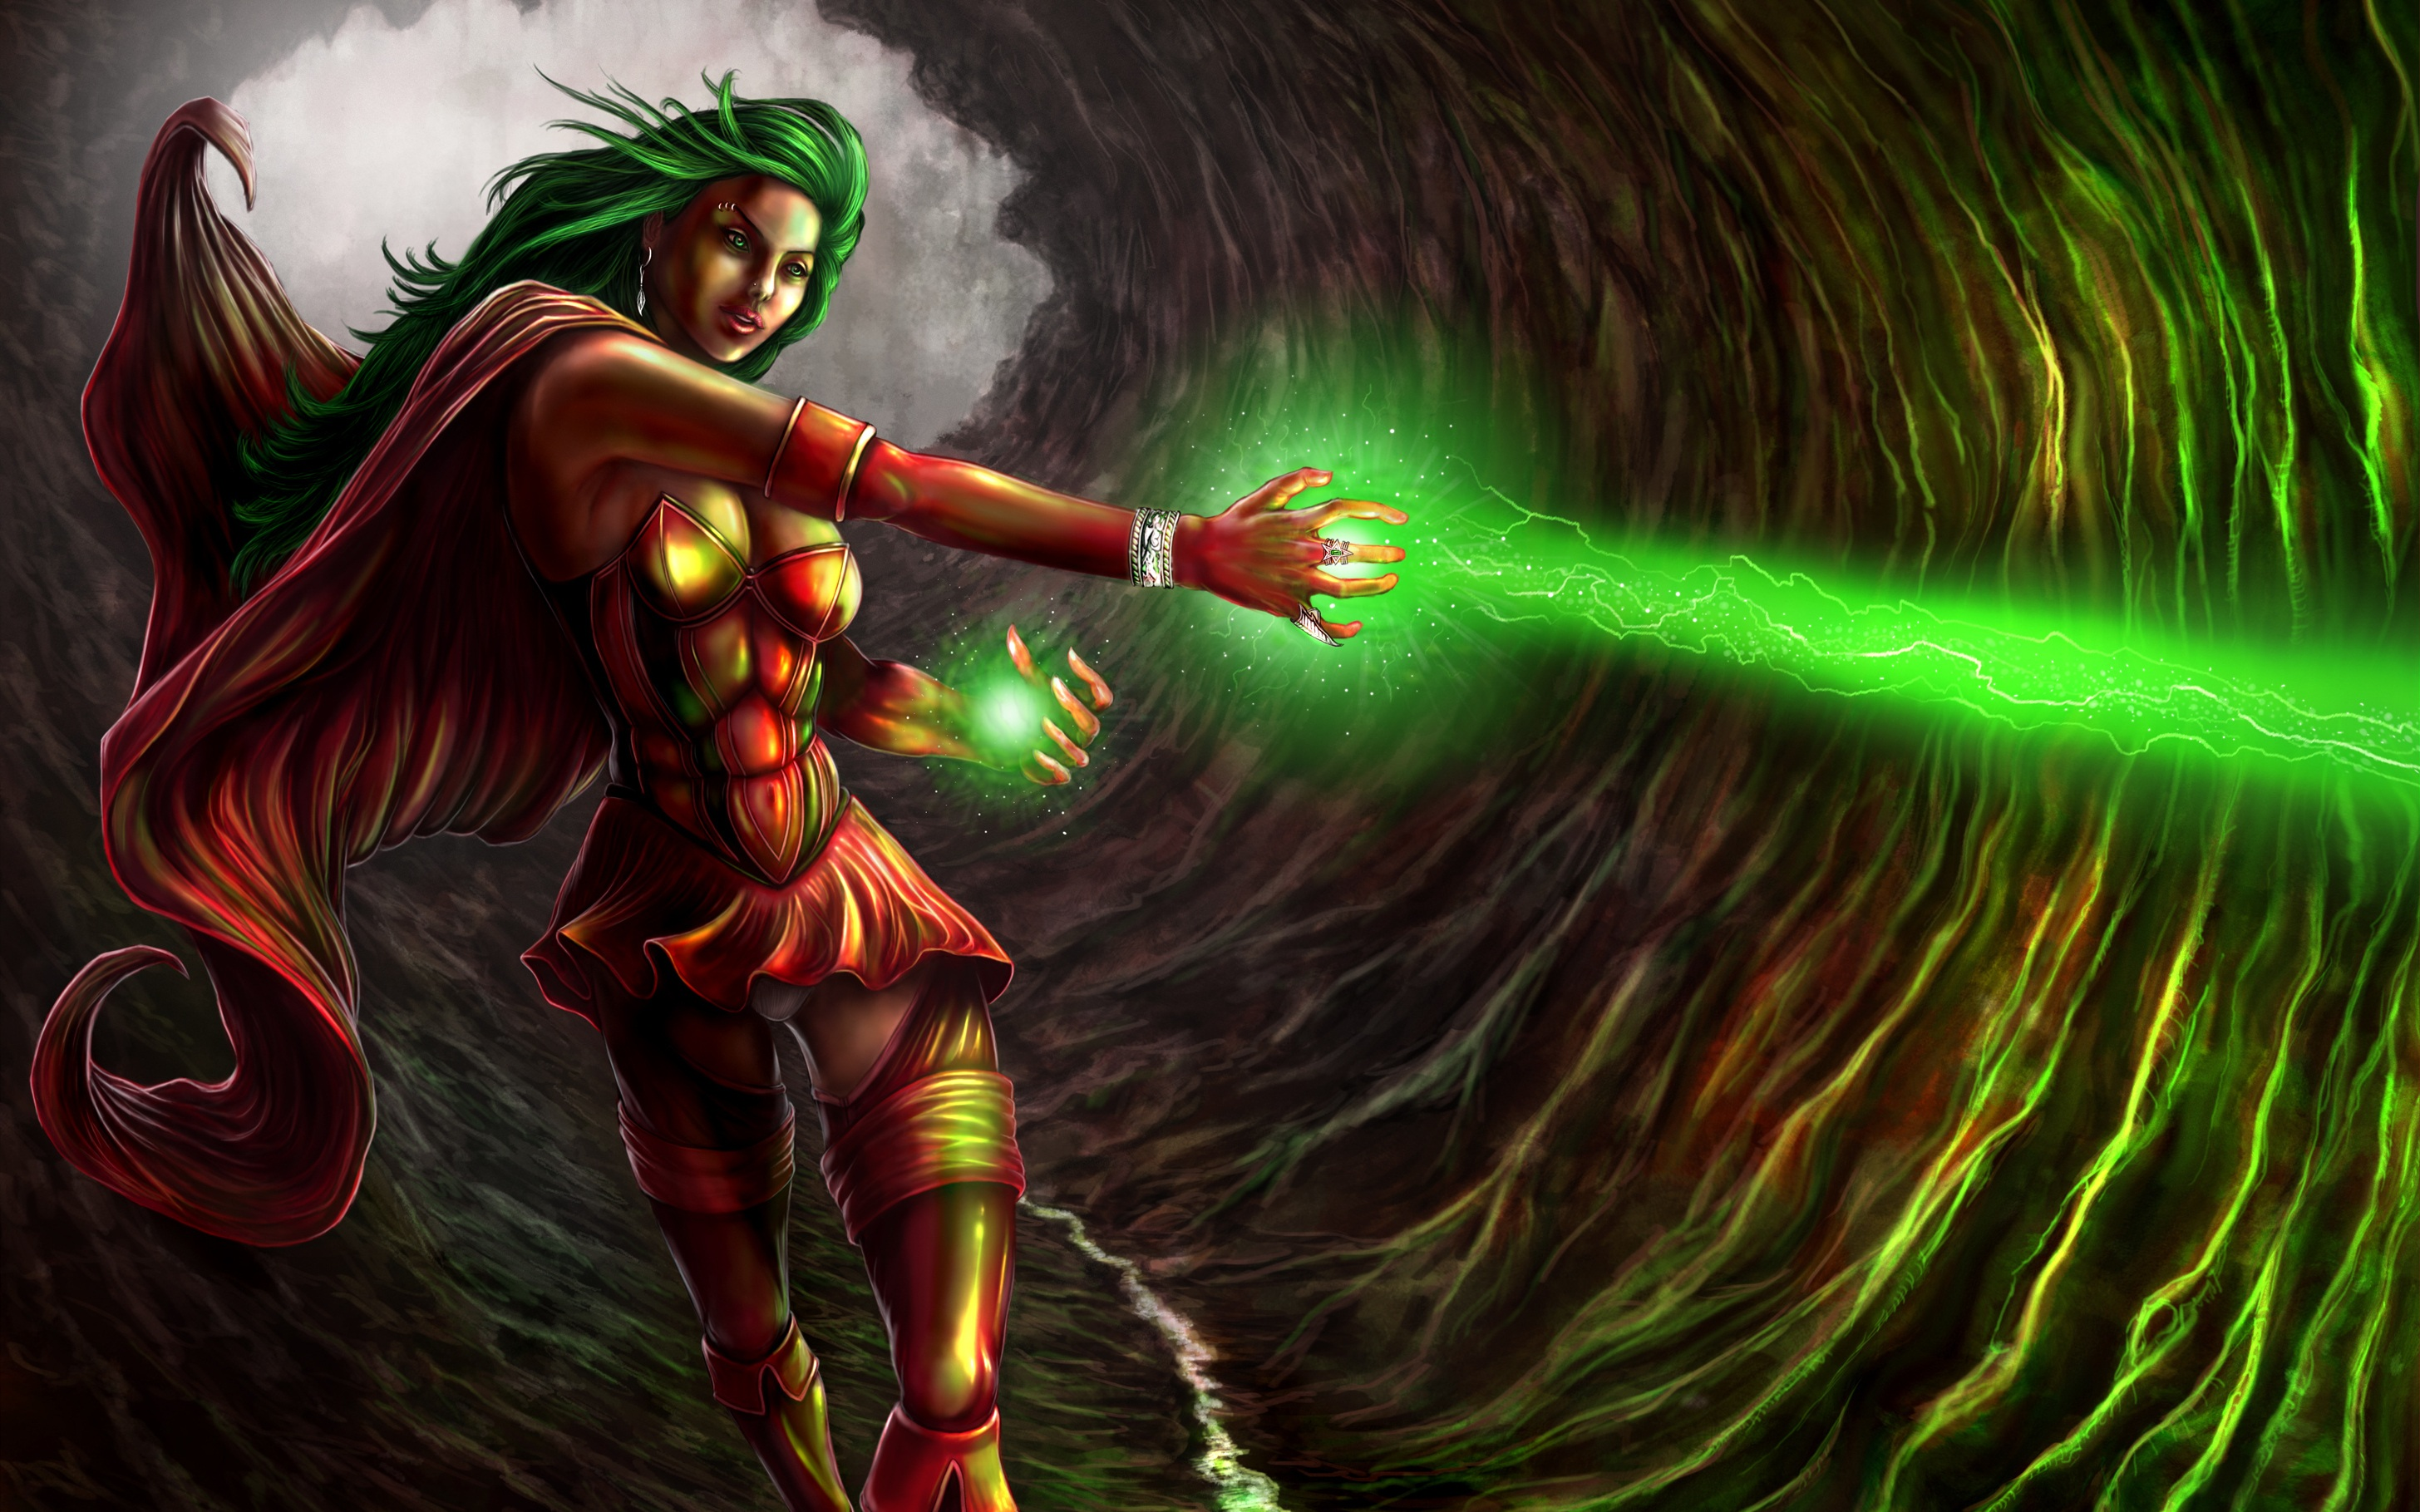 Girl New Wallpaper Download Girl With Green Hair Woman Warrior Green Magic Fantasy